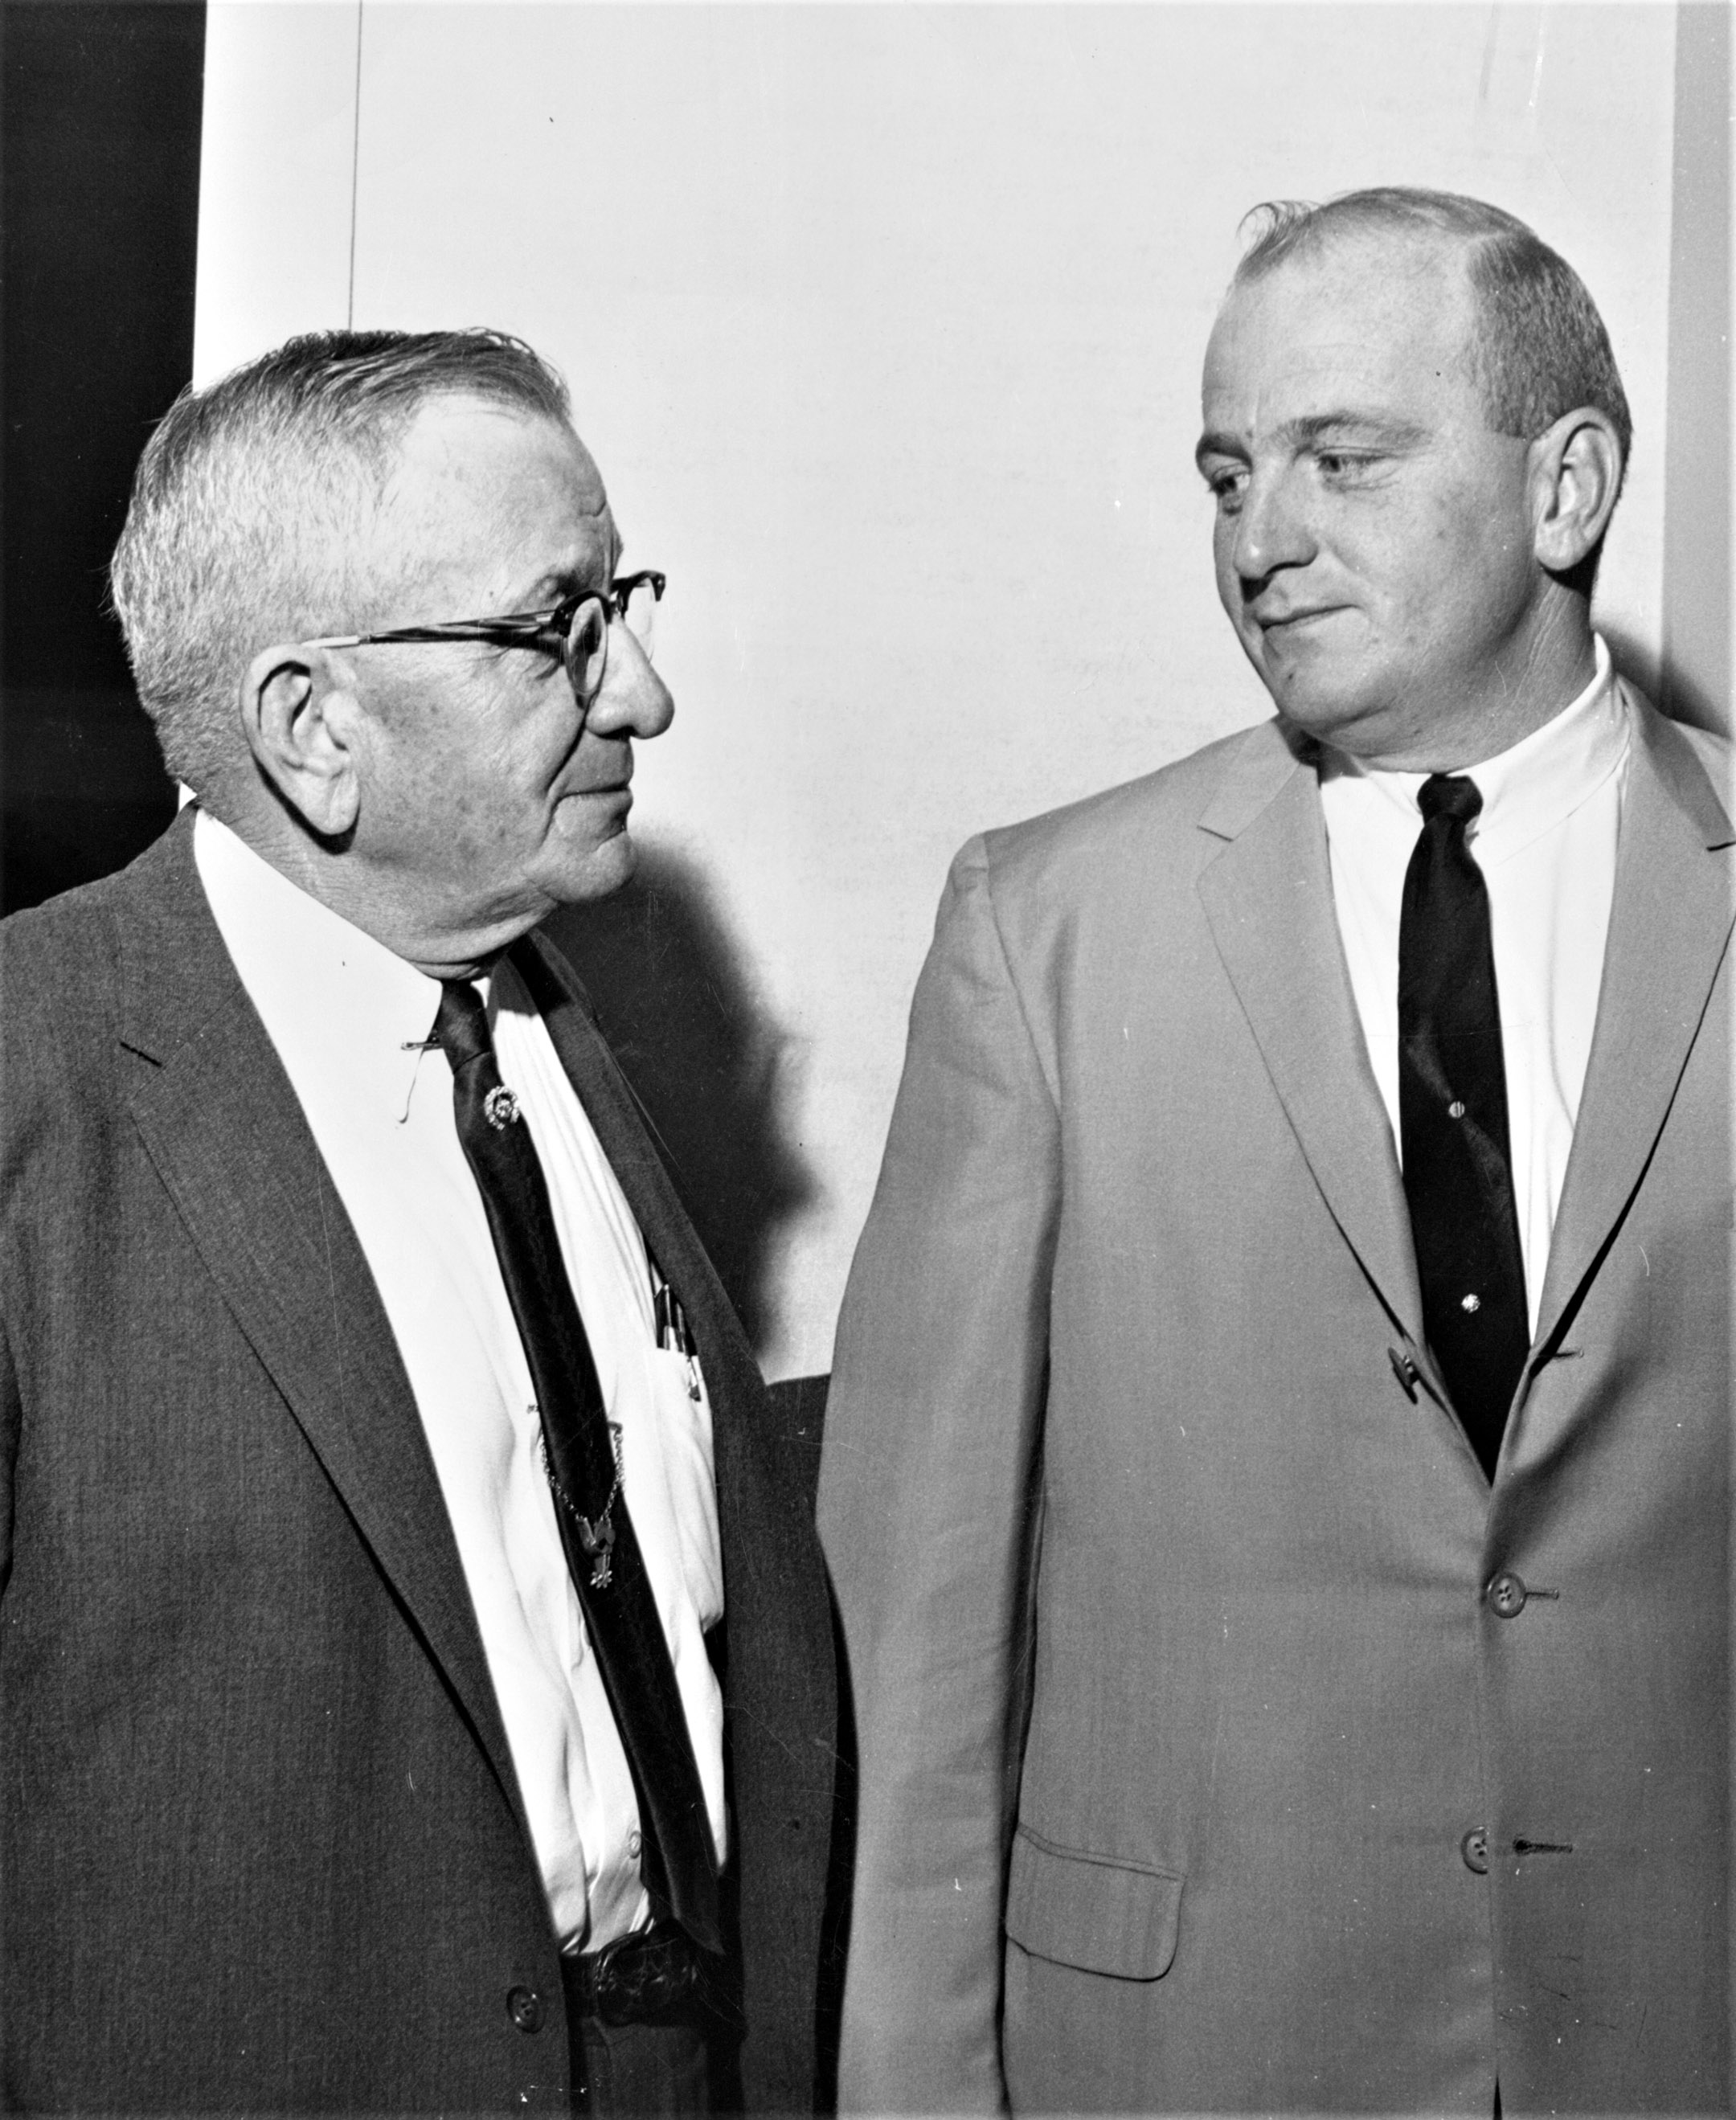 Marion Van Berg (left) and his son, Jack Van Berg, in 1965 (Keeneland Library Thoroughbred Times Collection)